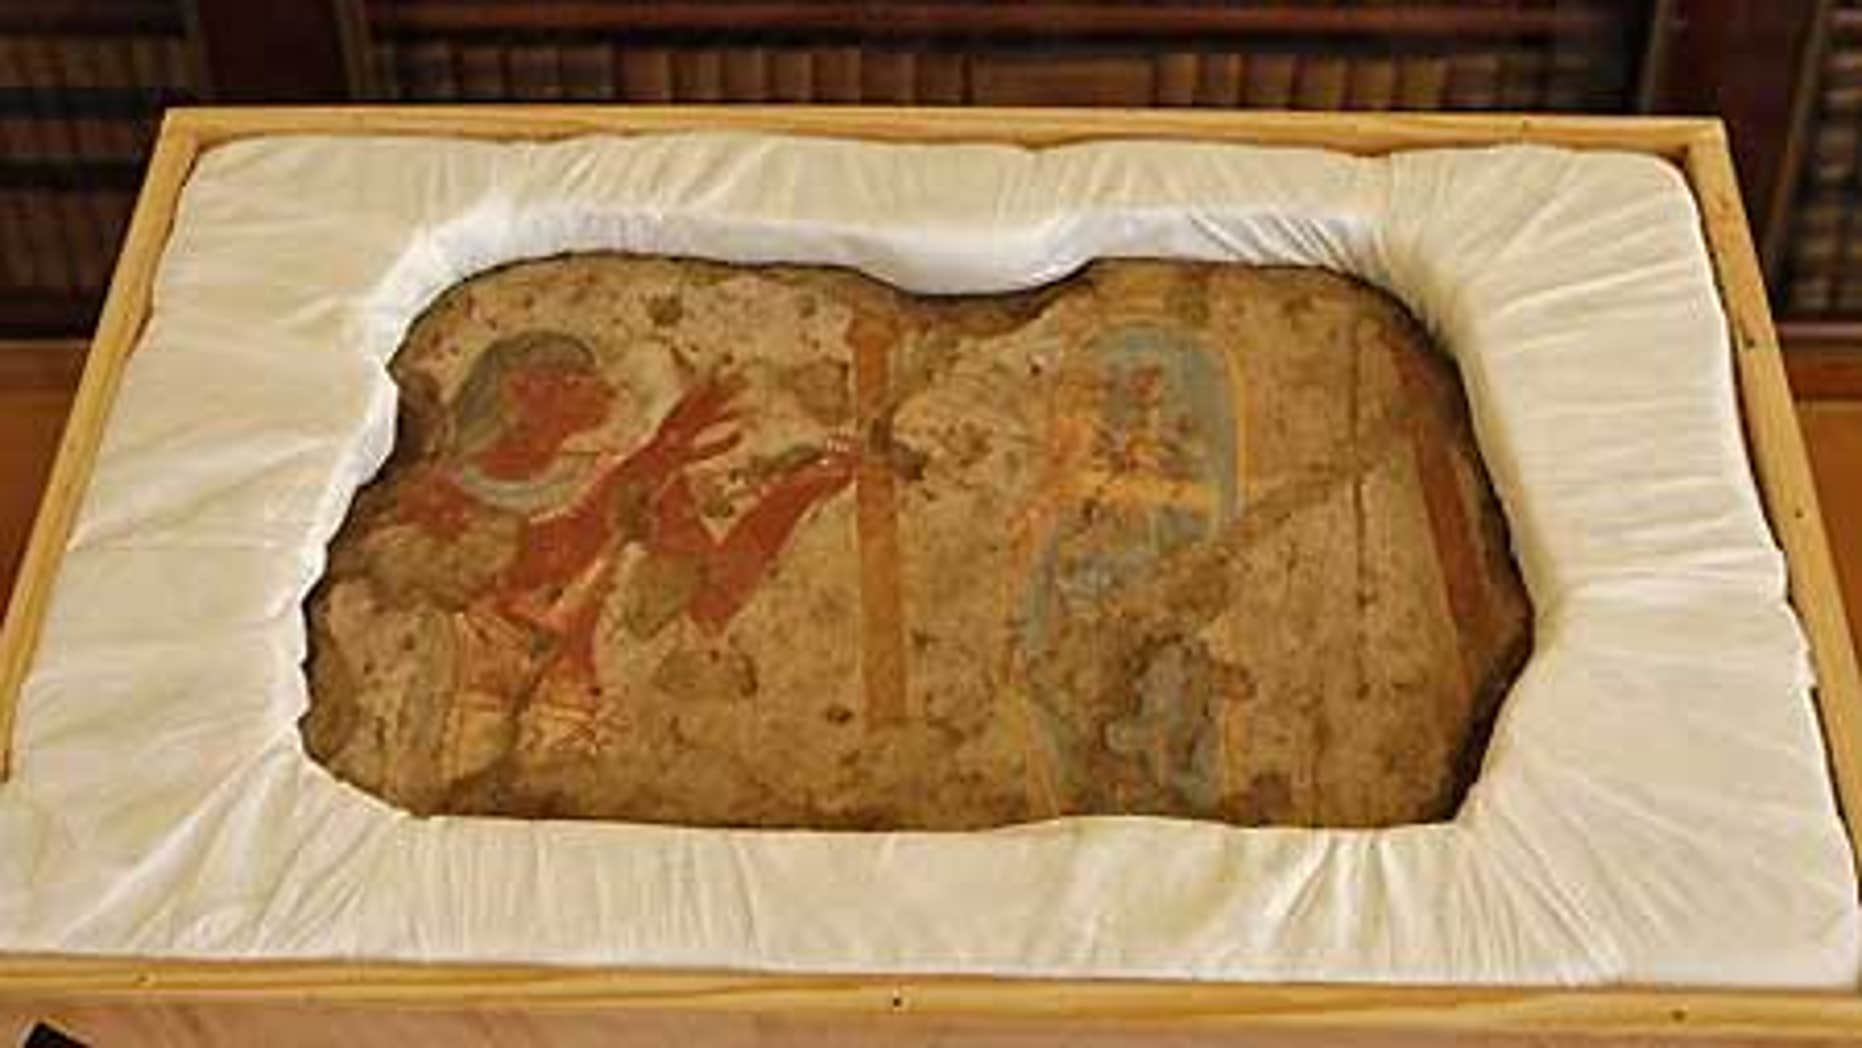 Dec. 14: One of the five fragments of an ancient wall painting that France returned to Egypt on Monday